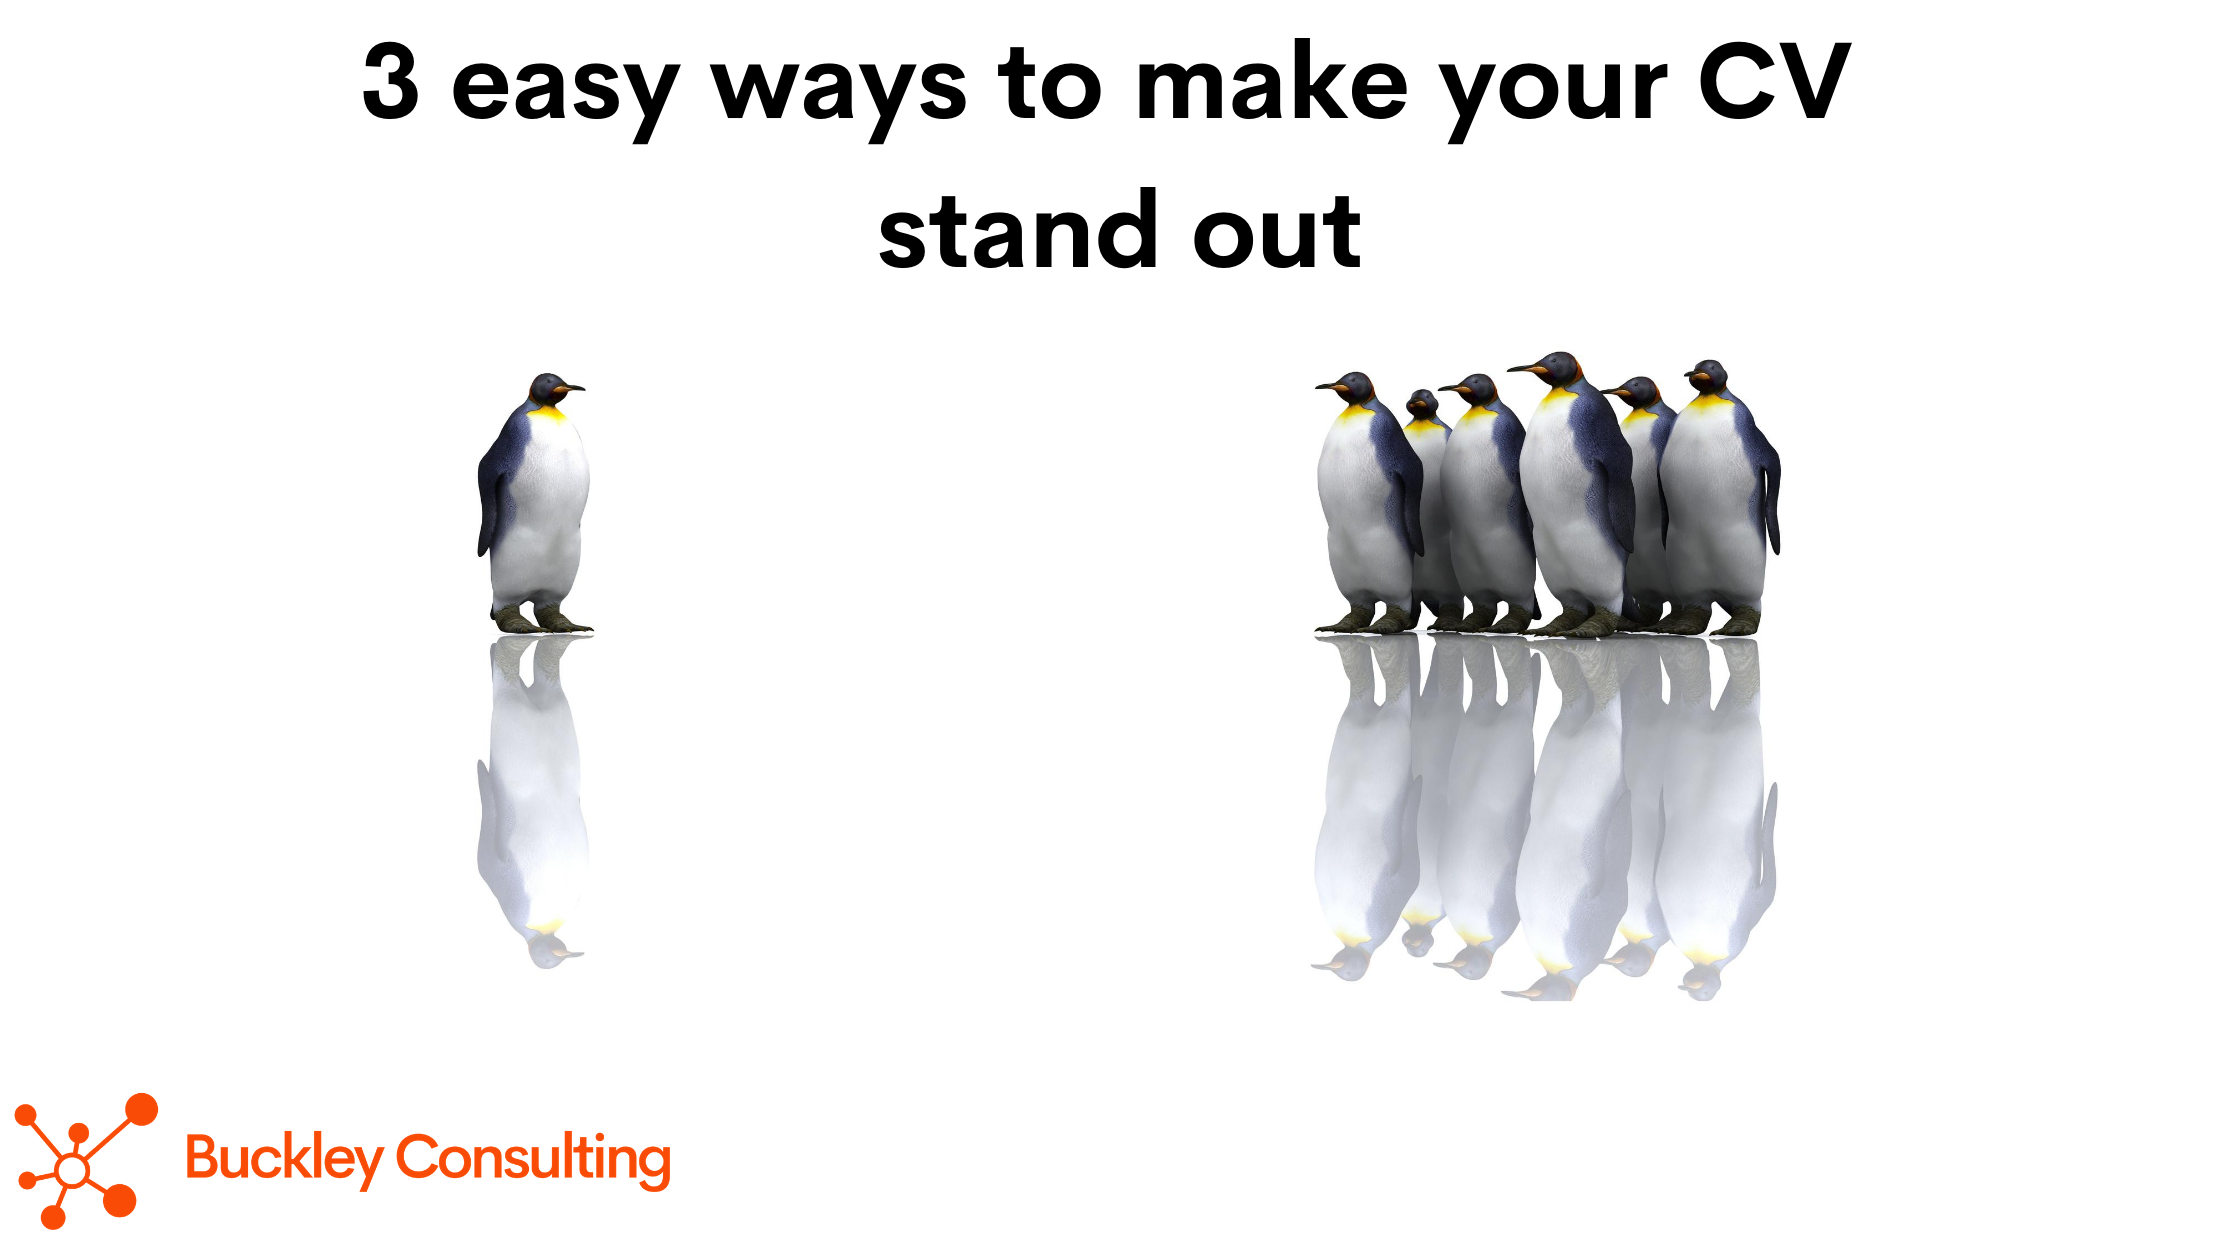 3 easy ways to make your CV stand out from the crowd